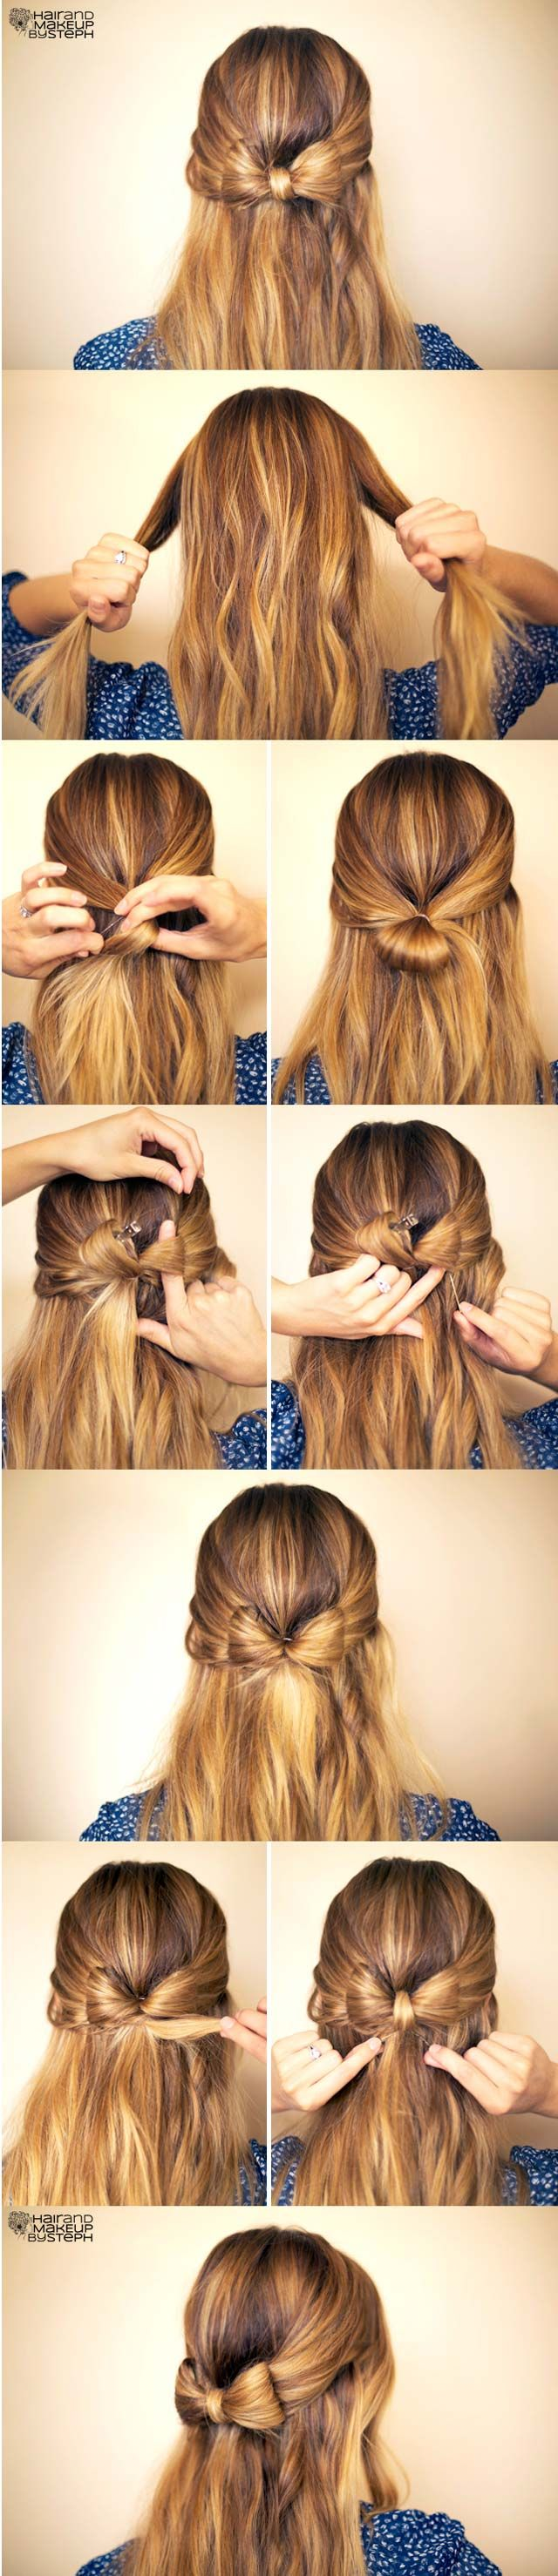 DIY! Your Step-by-Step for the Hair Bow http://www.fashiondivadesign.com/diy-your-step-by-step-for-the-best-cute-hairstyles/?utm_source=crowdignite.comutm_medium=referralutm_campaign=crowdignite.com